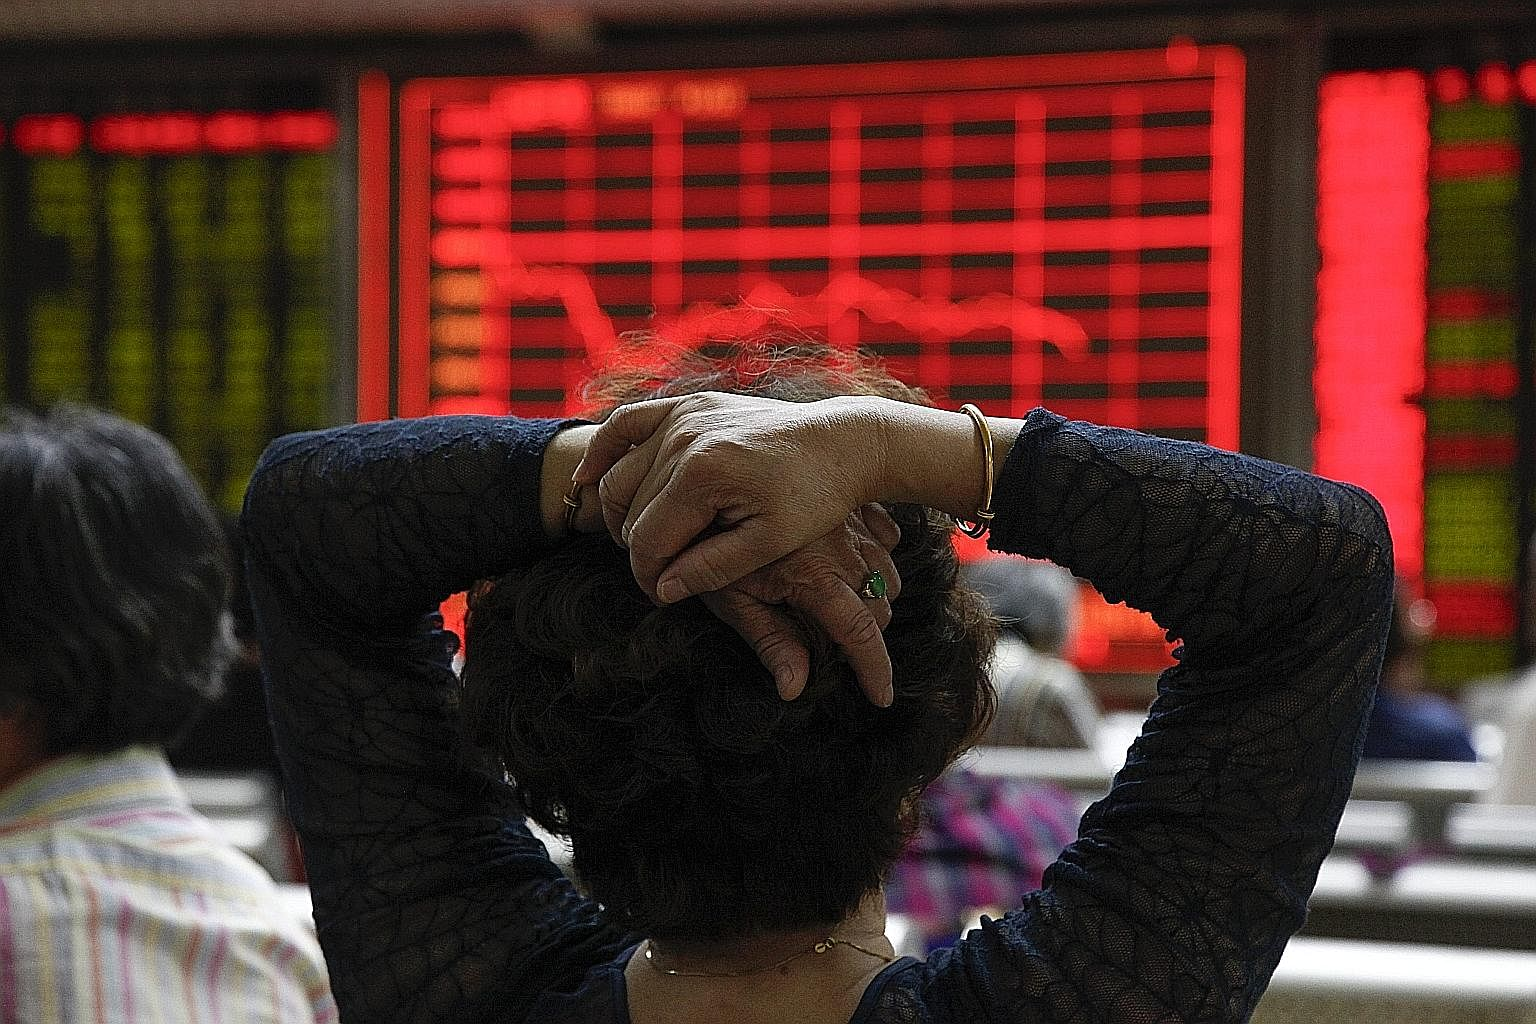 An investor monitoring stock market data on an electronic board at a securities brokerage house in Beijing earlier this month.